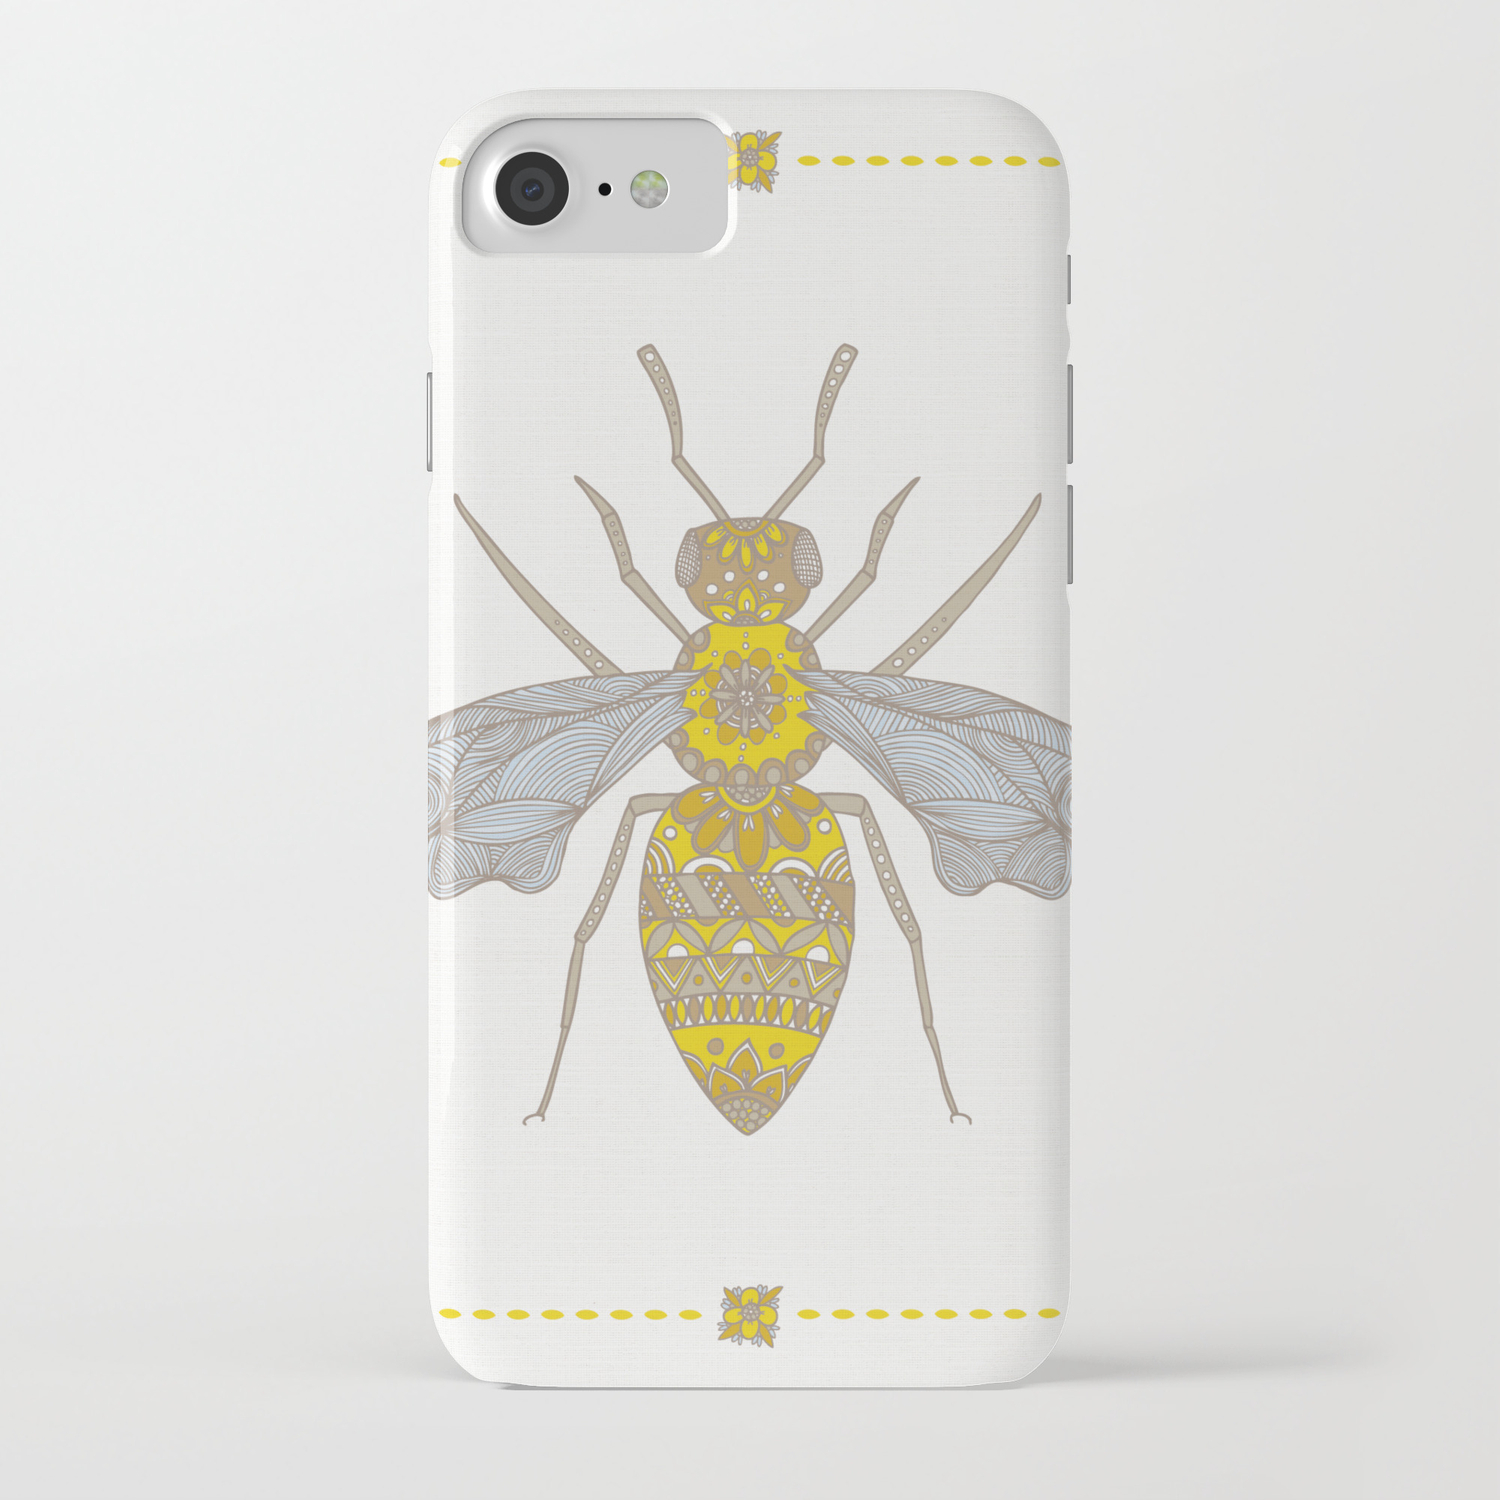 bees iphone 7 case